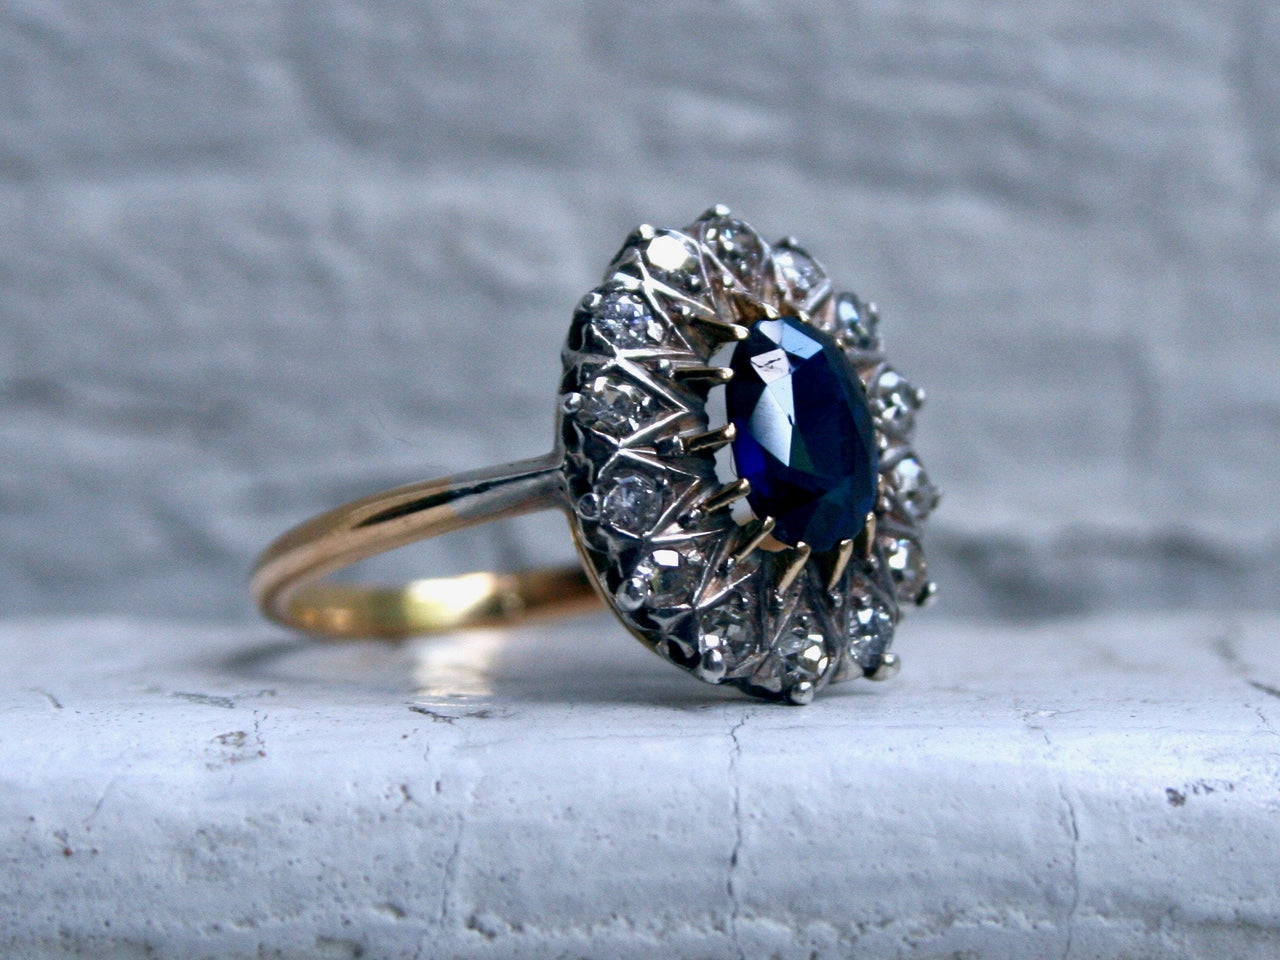 Antique 18K Yellow Gold Diamond Halo and Sapphire Engagement Ring - 1.66ct.